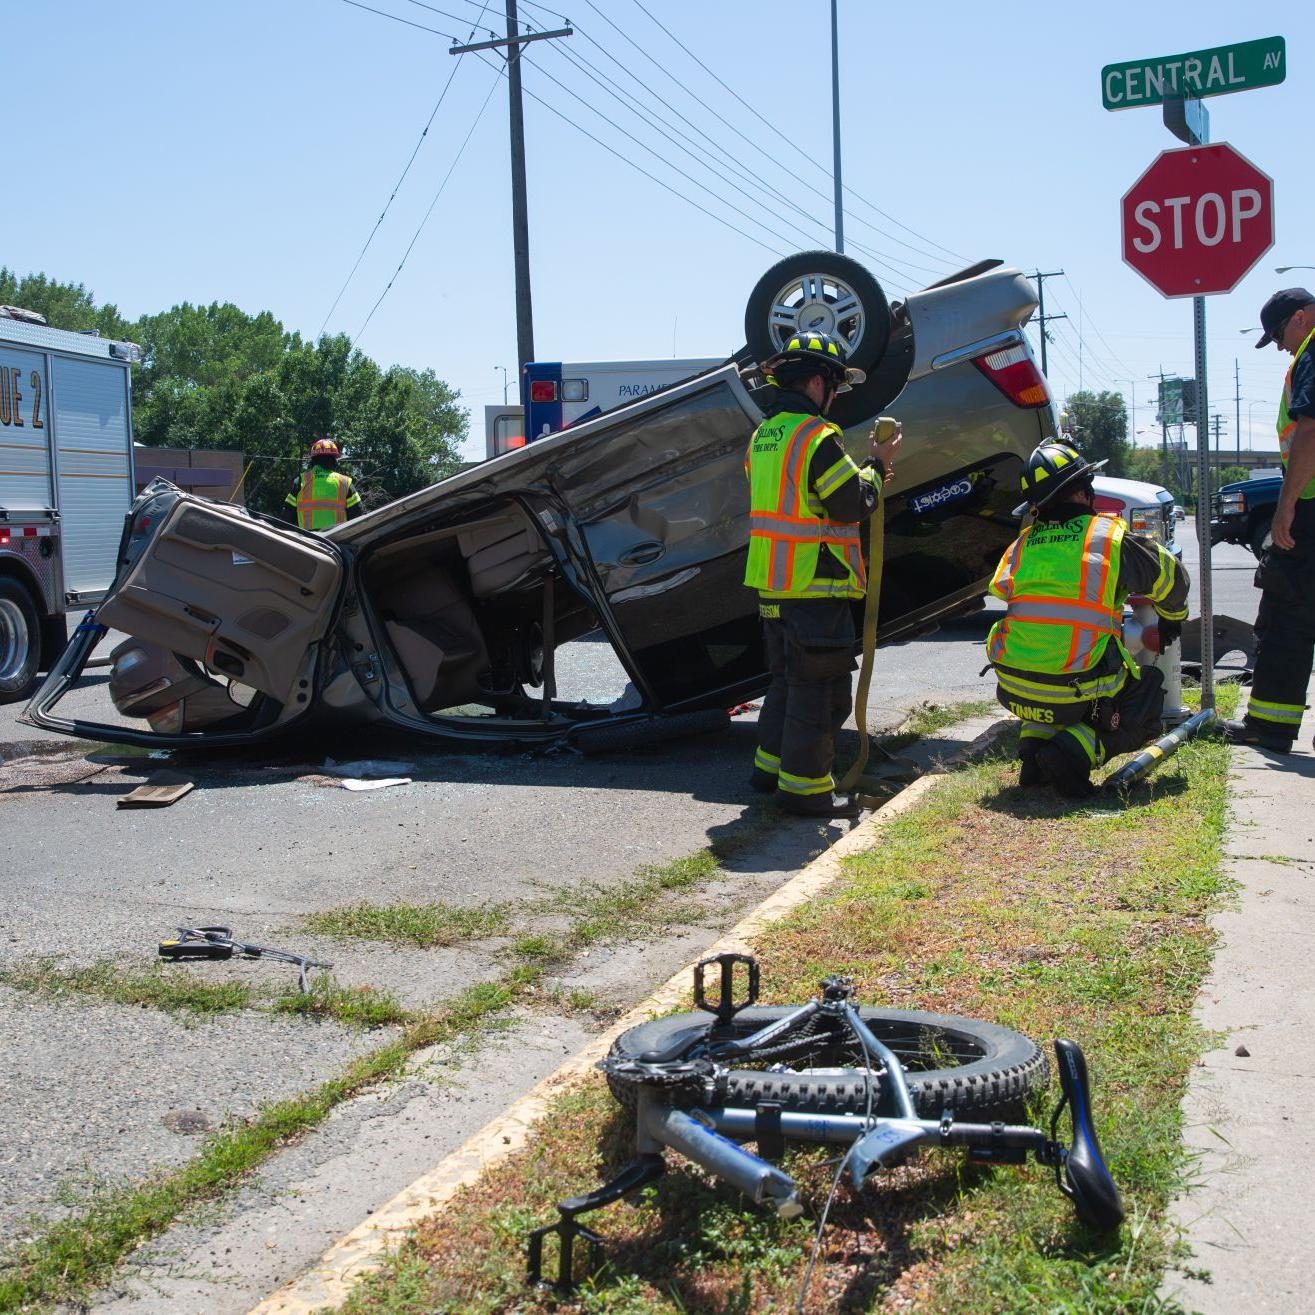 4 taken to hospital after minivan rollover pins bike on